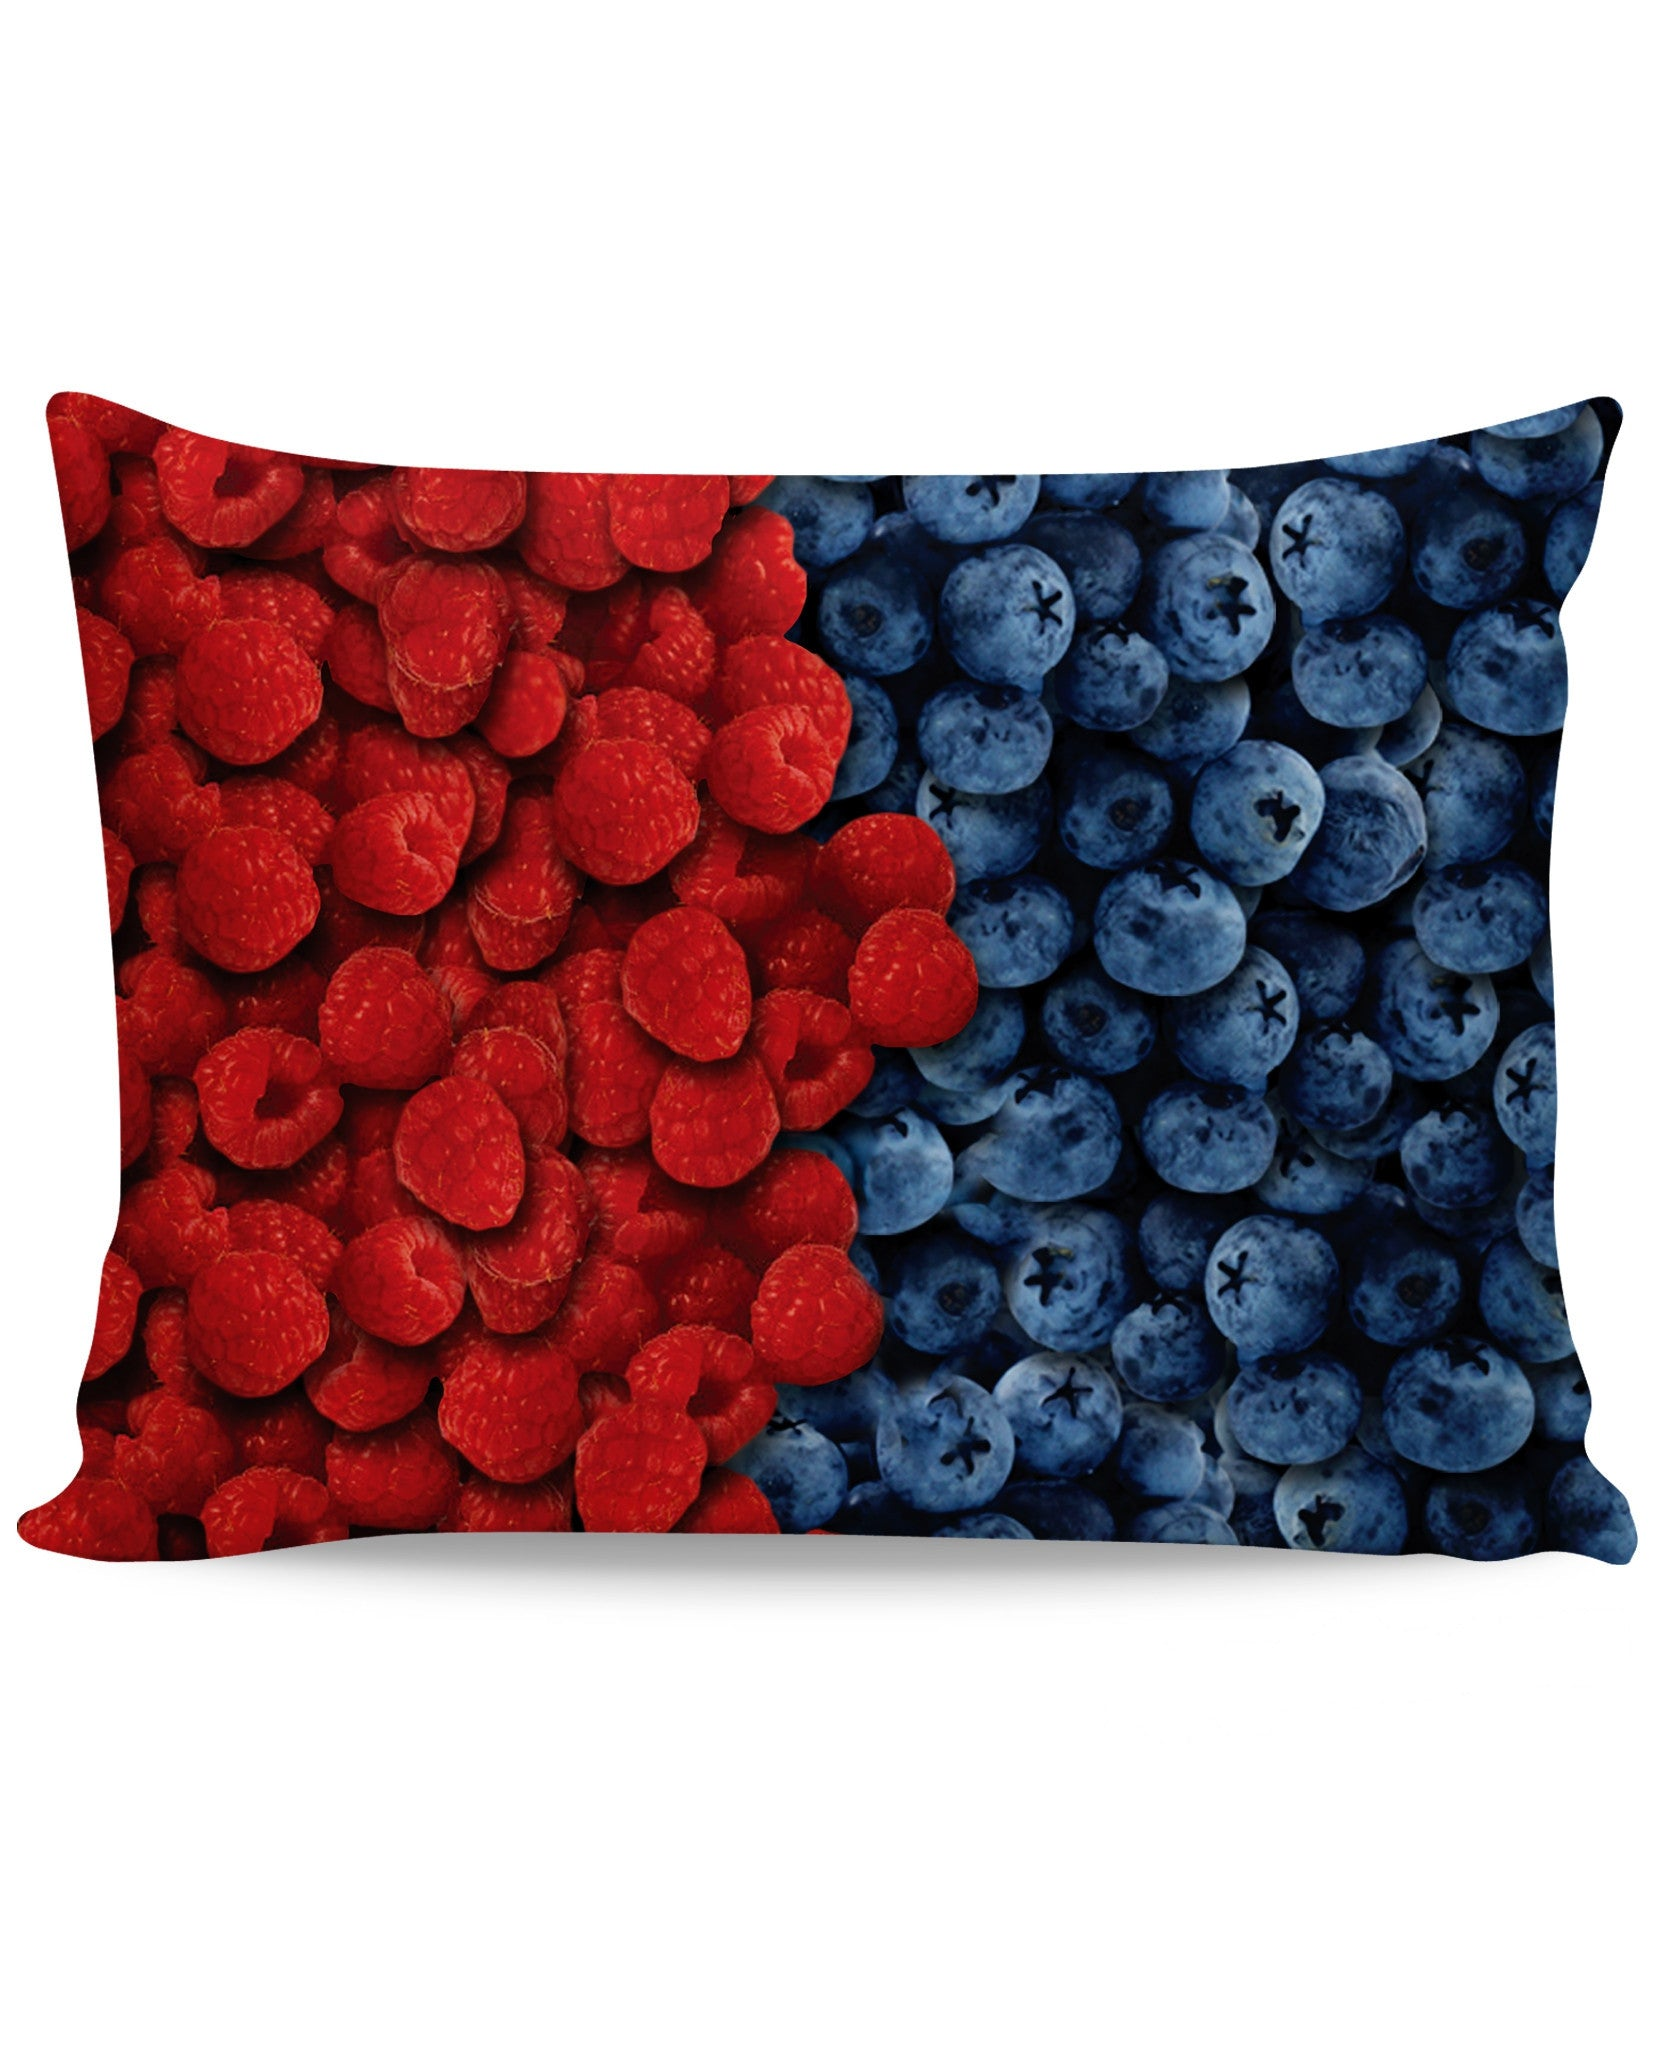 Berries Bed Pillow Case